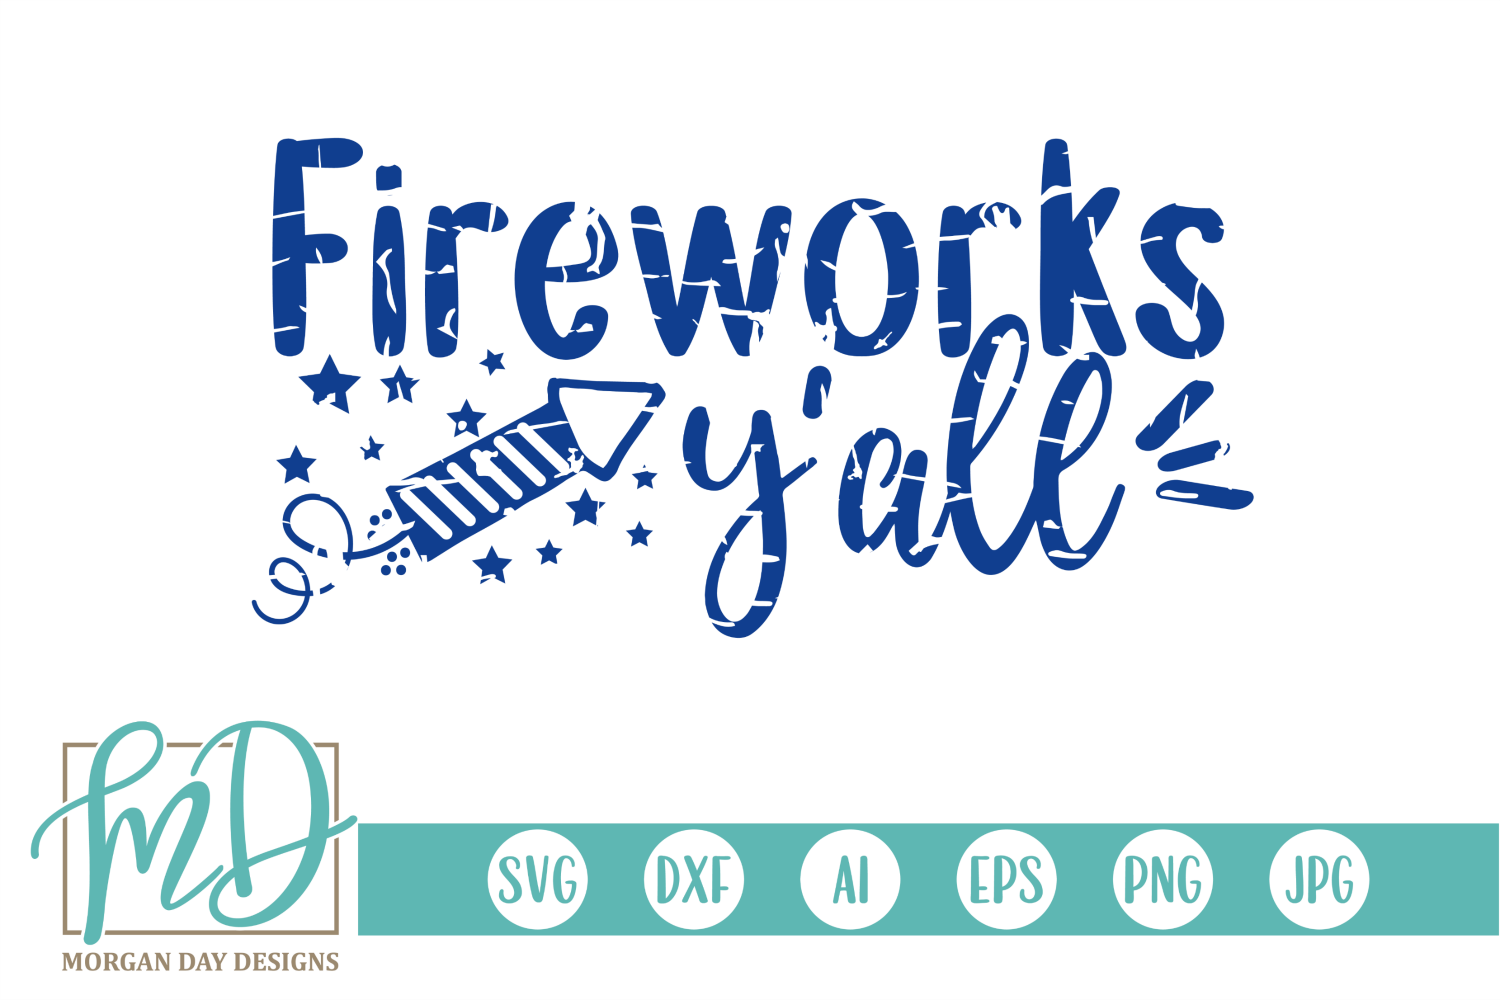 Download Free Grunge Fireworks Y All Svg Graphic By Morgan Day Designs for Cricut Explore, Silhouette and other cutting machines.